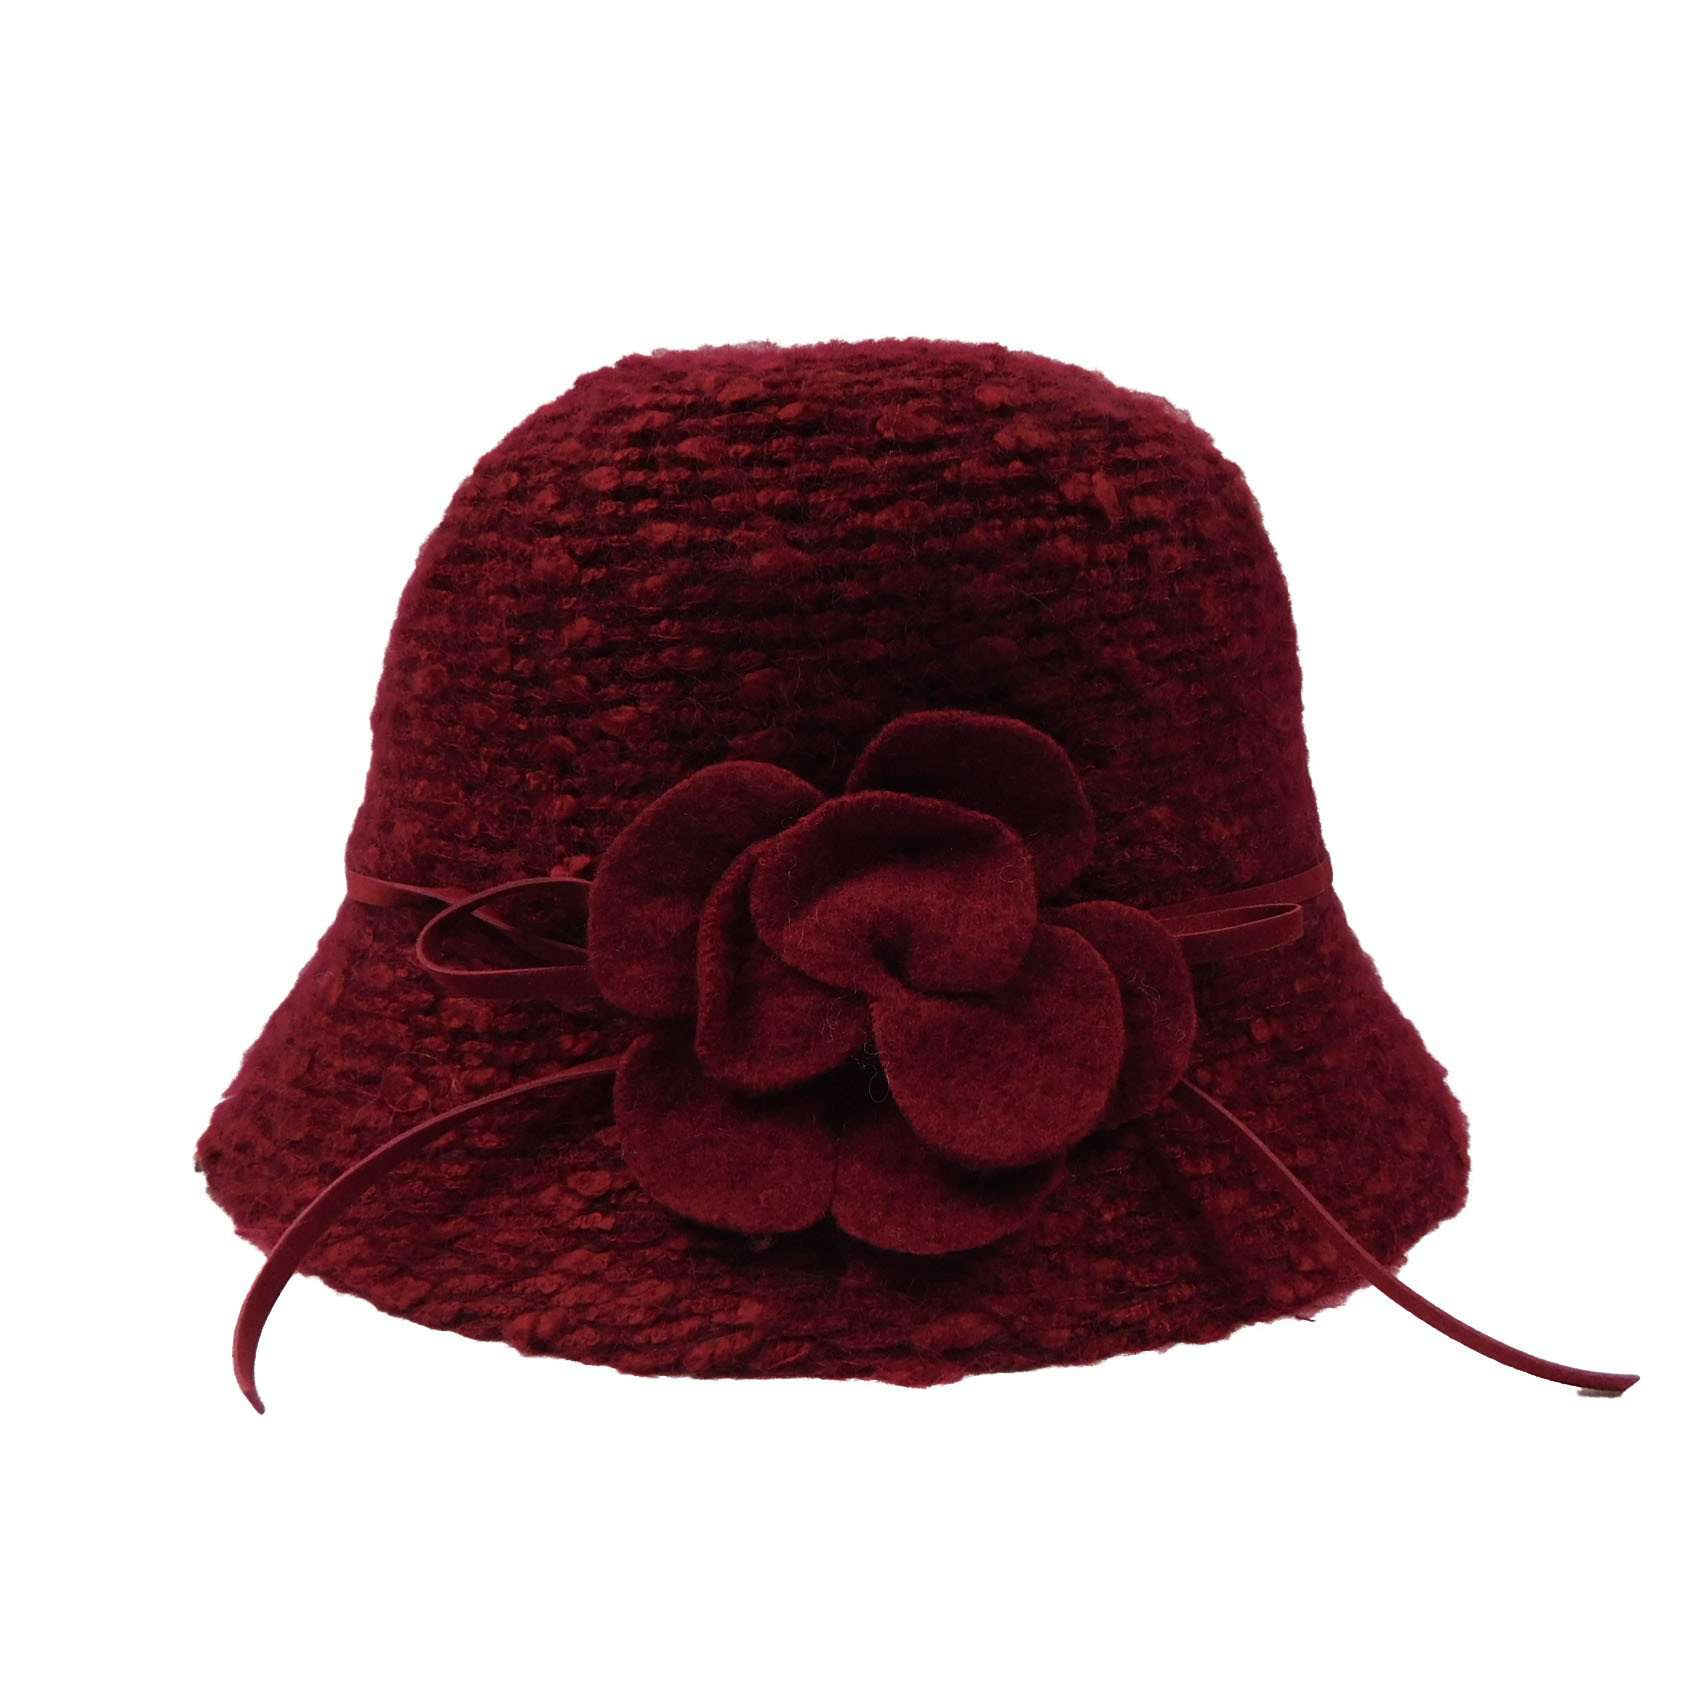 c6f2784ccbb SetarTrading Hats and Accessories - Shop Men s and Women s Hats Online